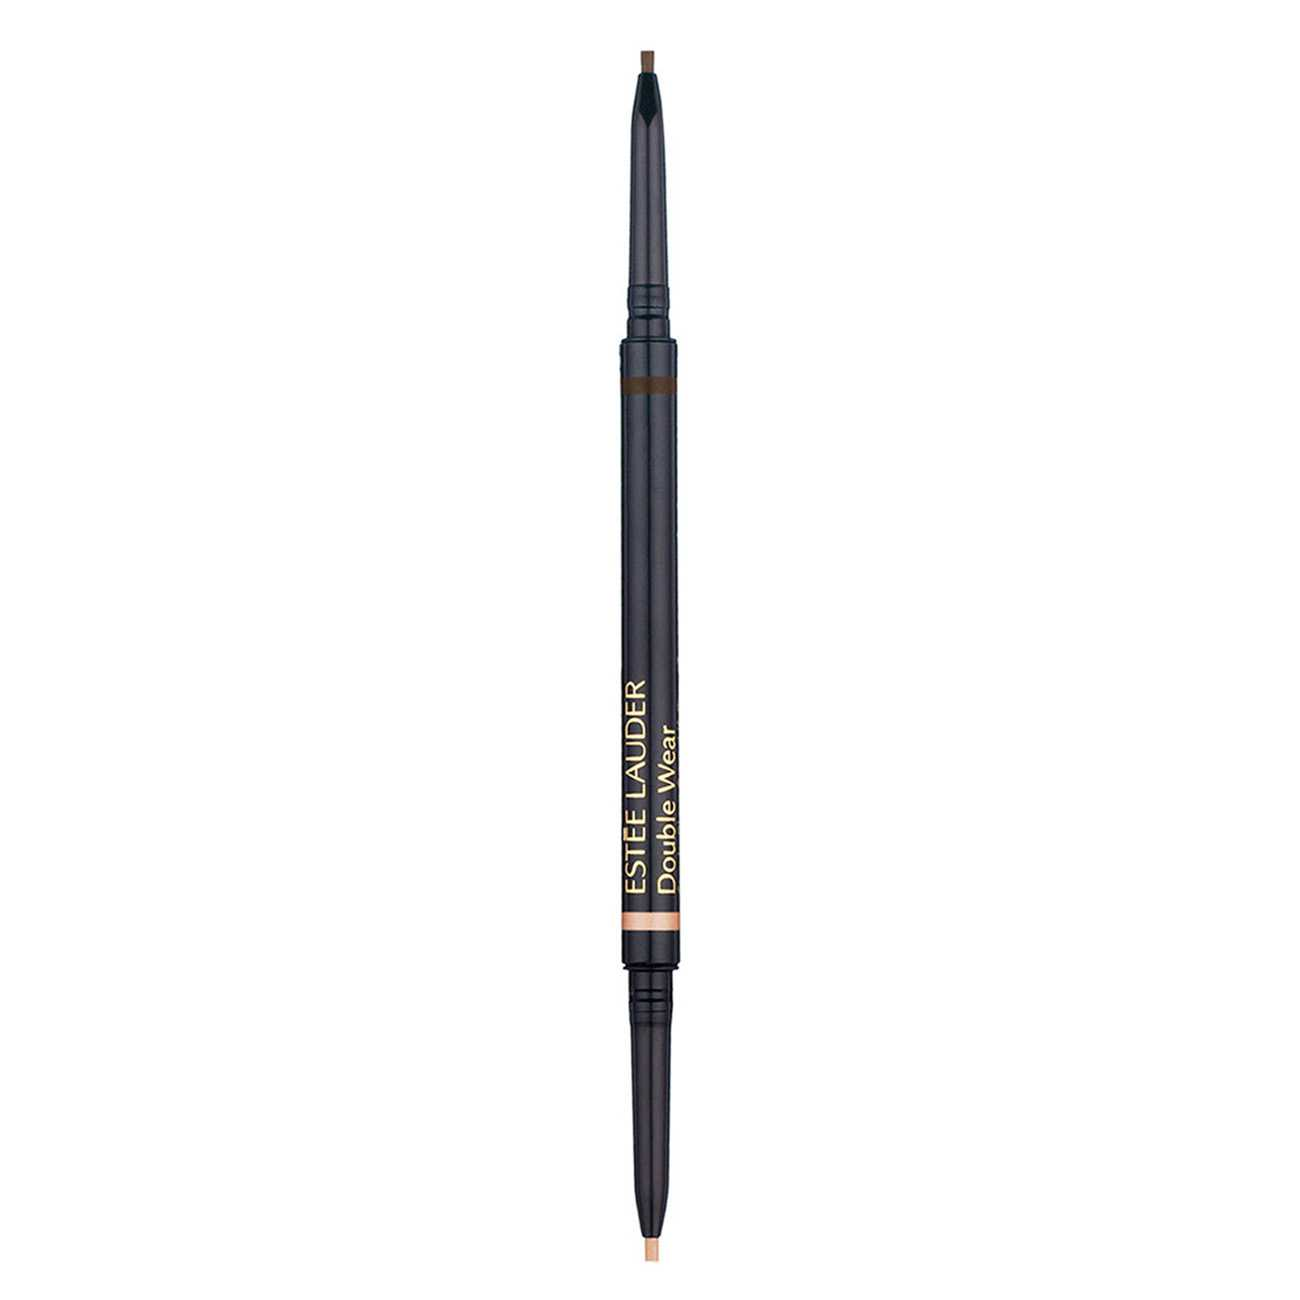 DOUBLE WEAR STAY-IN-PLACE BROW LIFT DUO 0.9 ML Black Brown 1